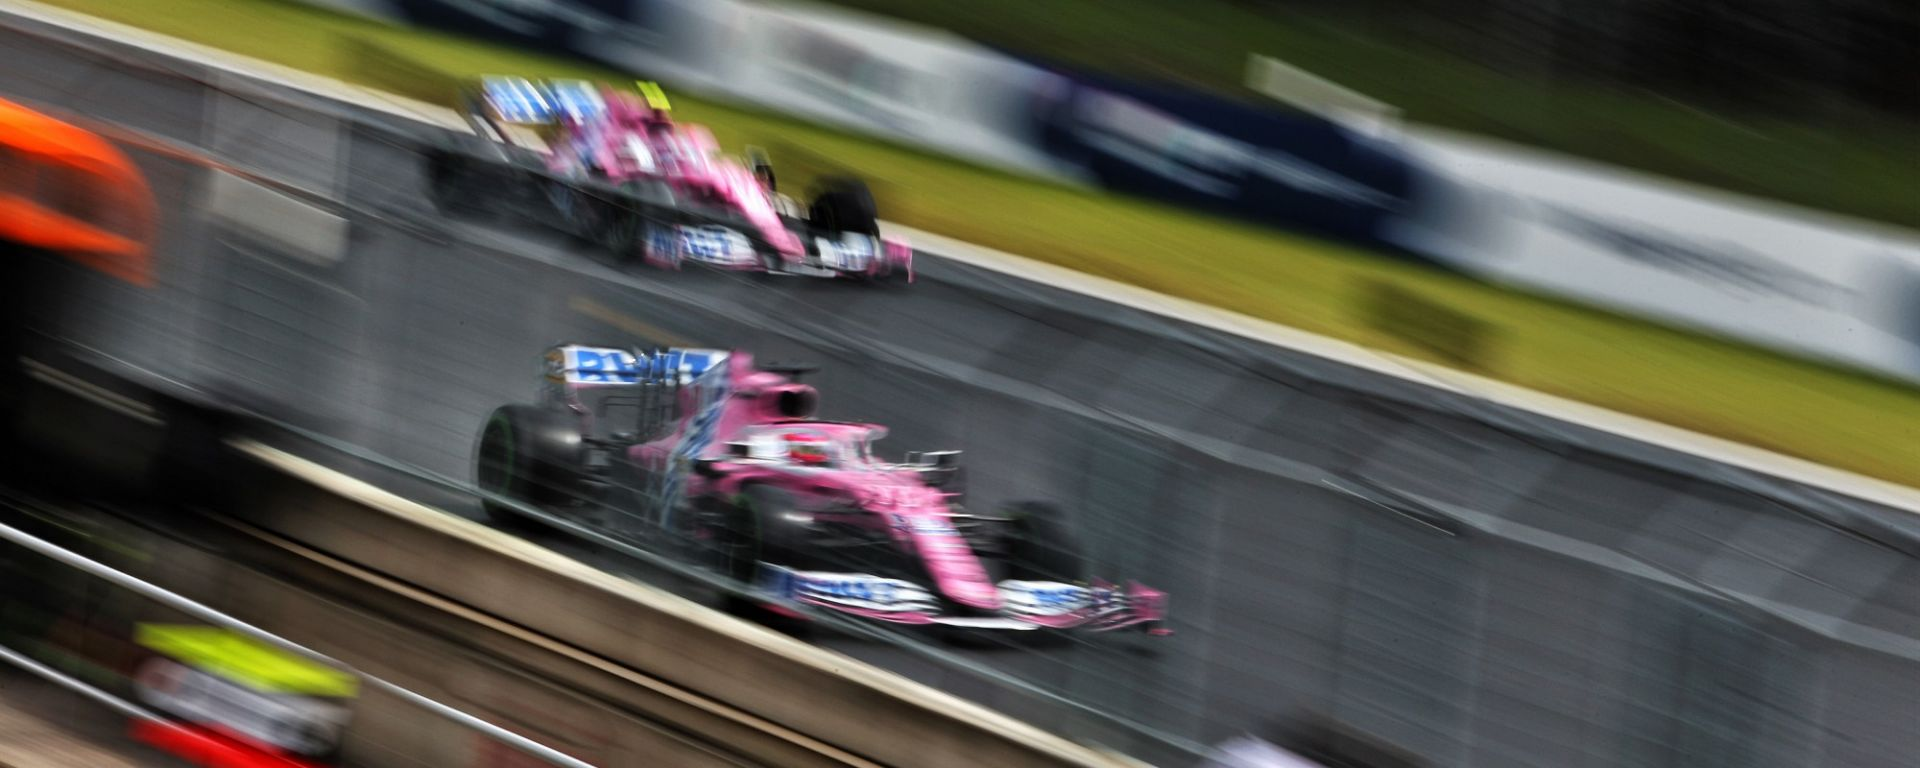 Le due Racing Point di Stroll e Perez al GP d'Ungheria